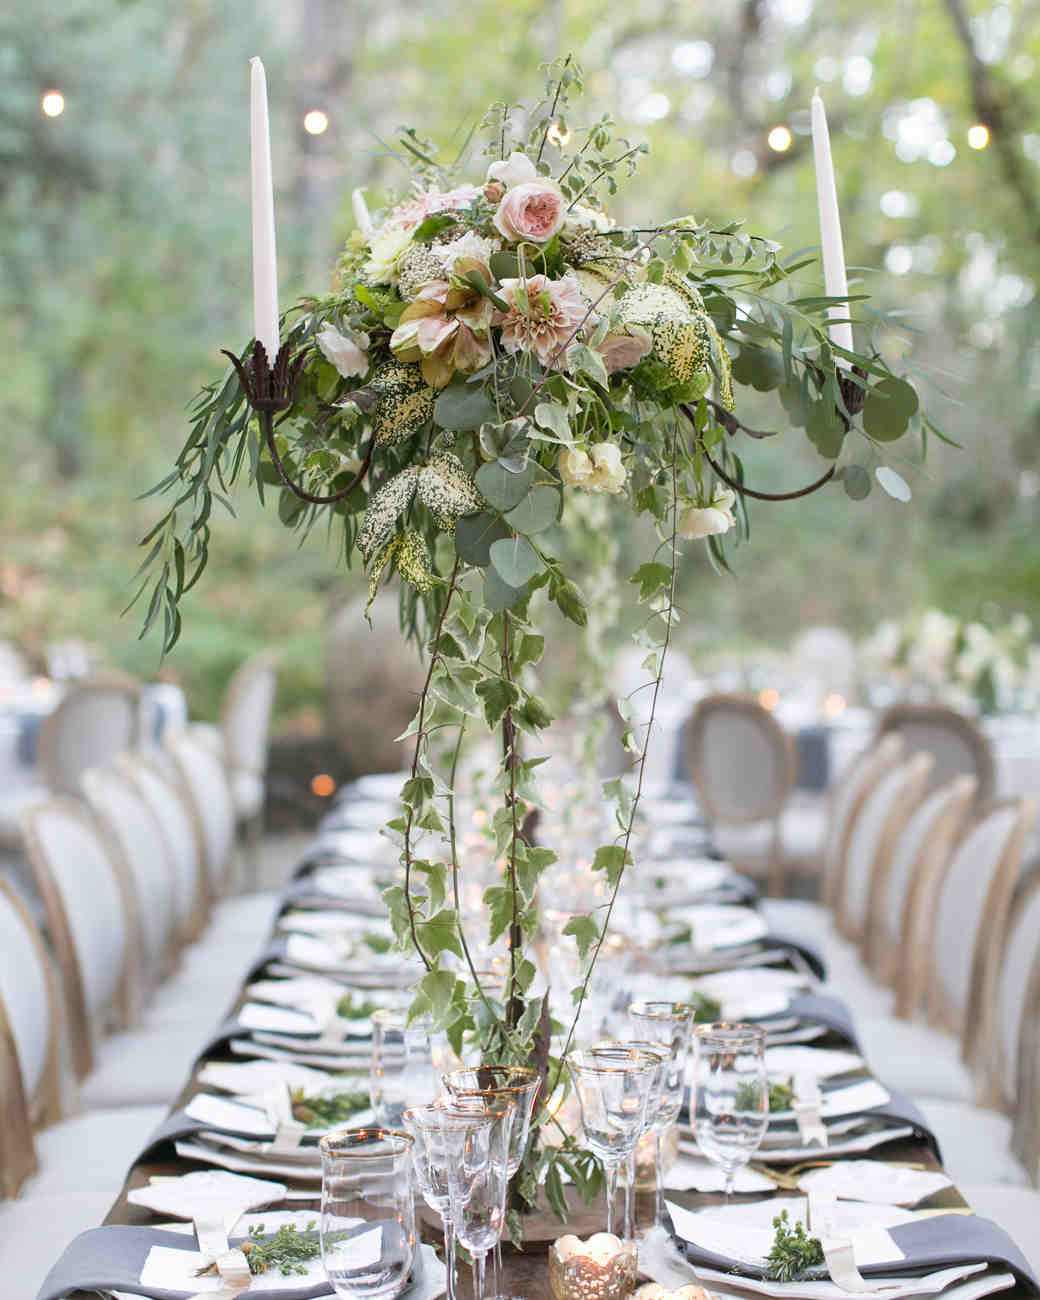 Wedding Head Table Decoration Ideas: 50 Wedding Centerpiece Ideas We Love